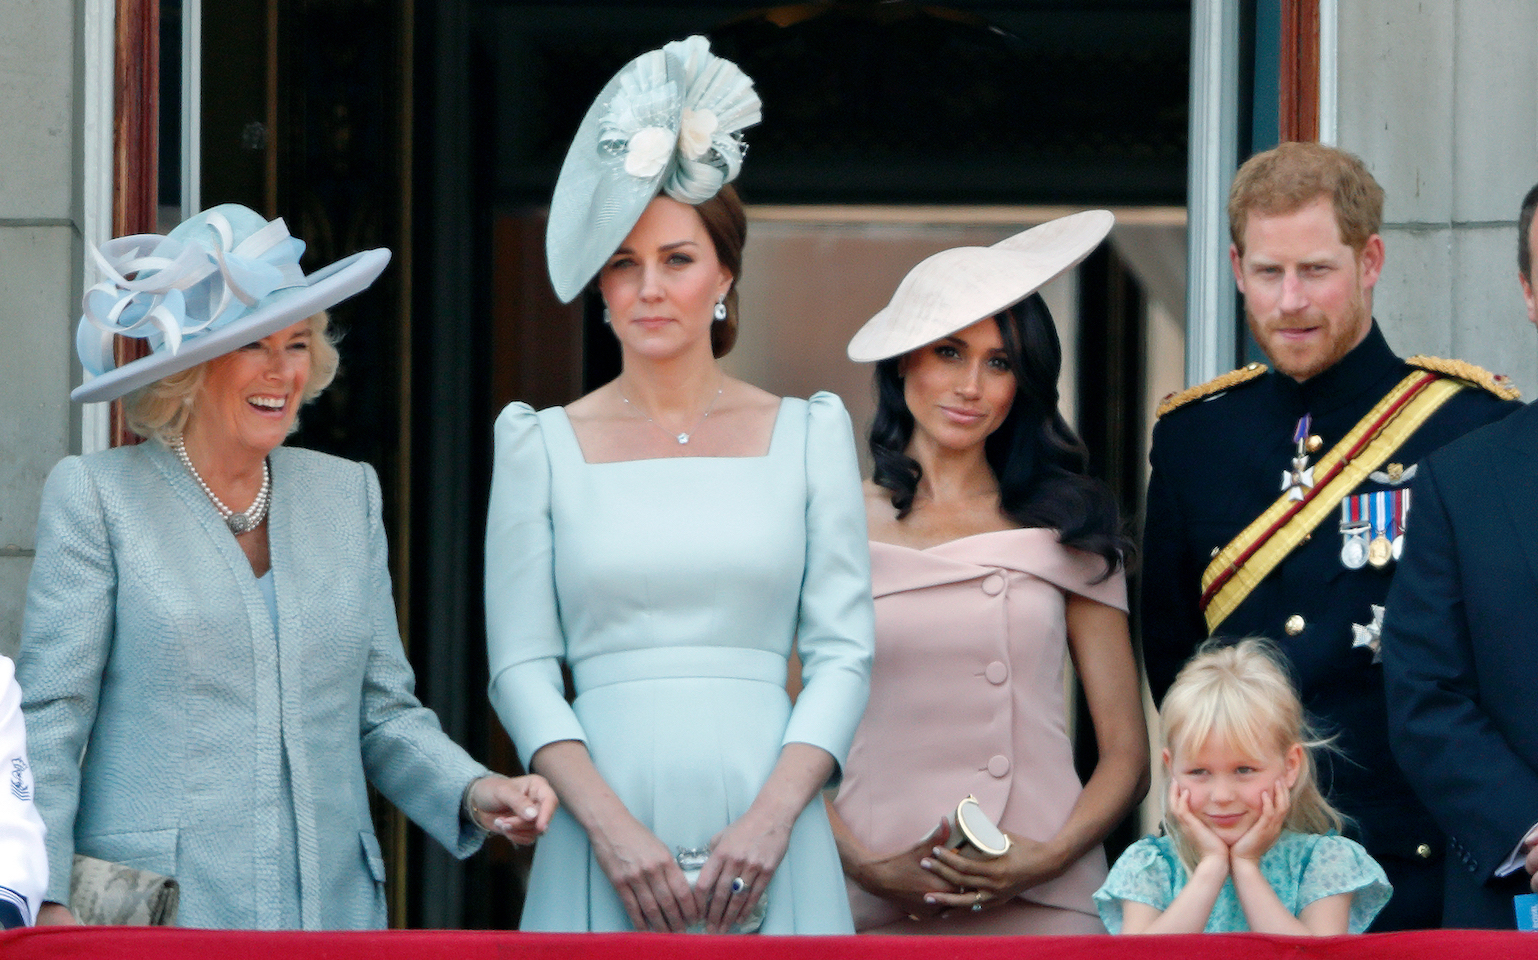 Meghan Markle and kate Middleton at the Trooping the Colour